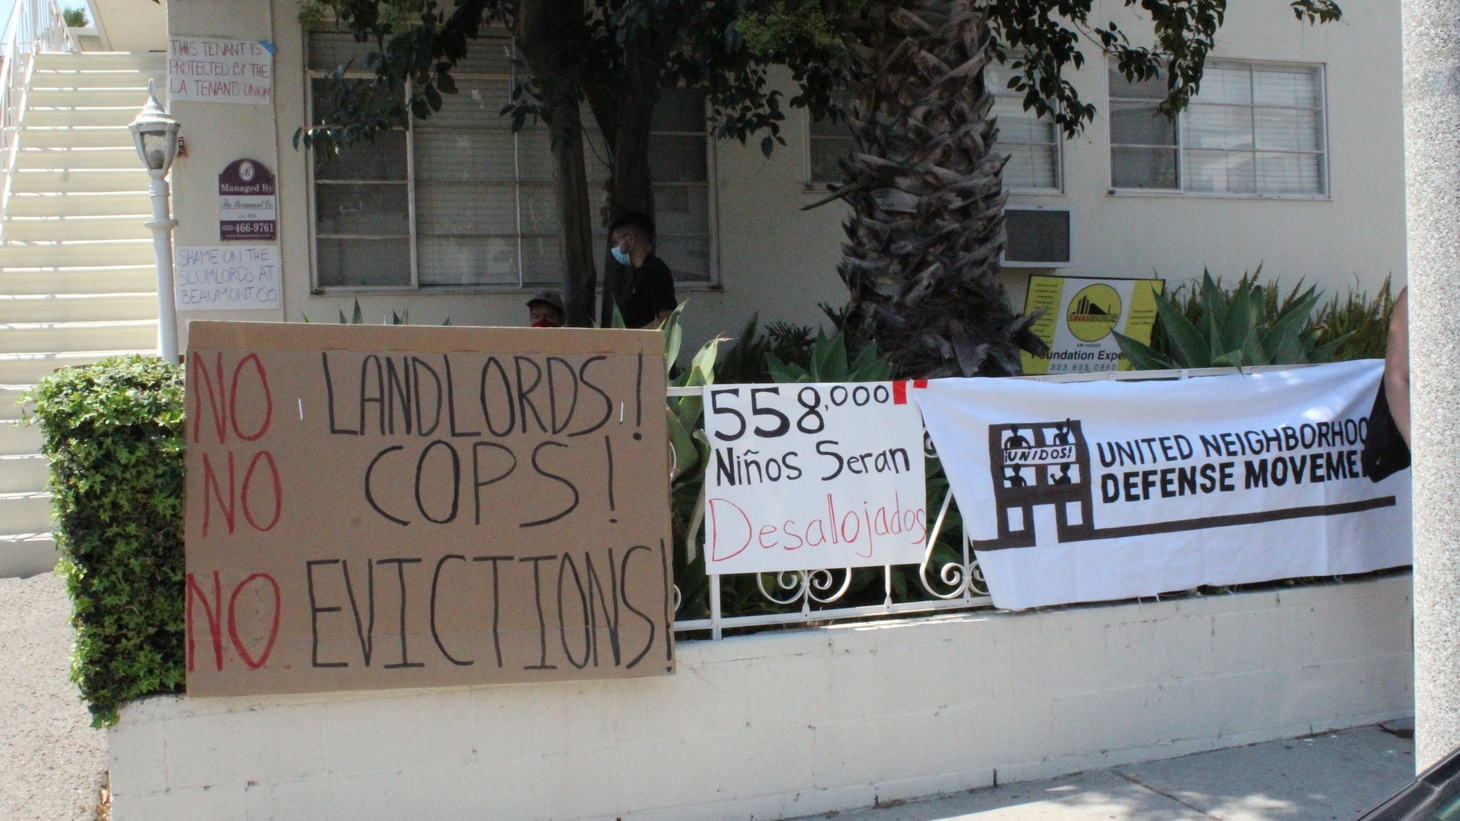 Activists from the LA Tenants Union have gathered in Hollywood to prevent one of those evictions from being carried out.